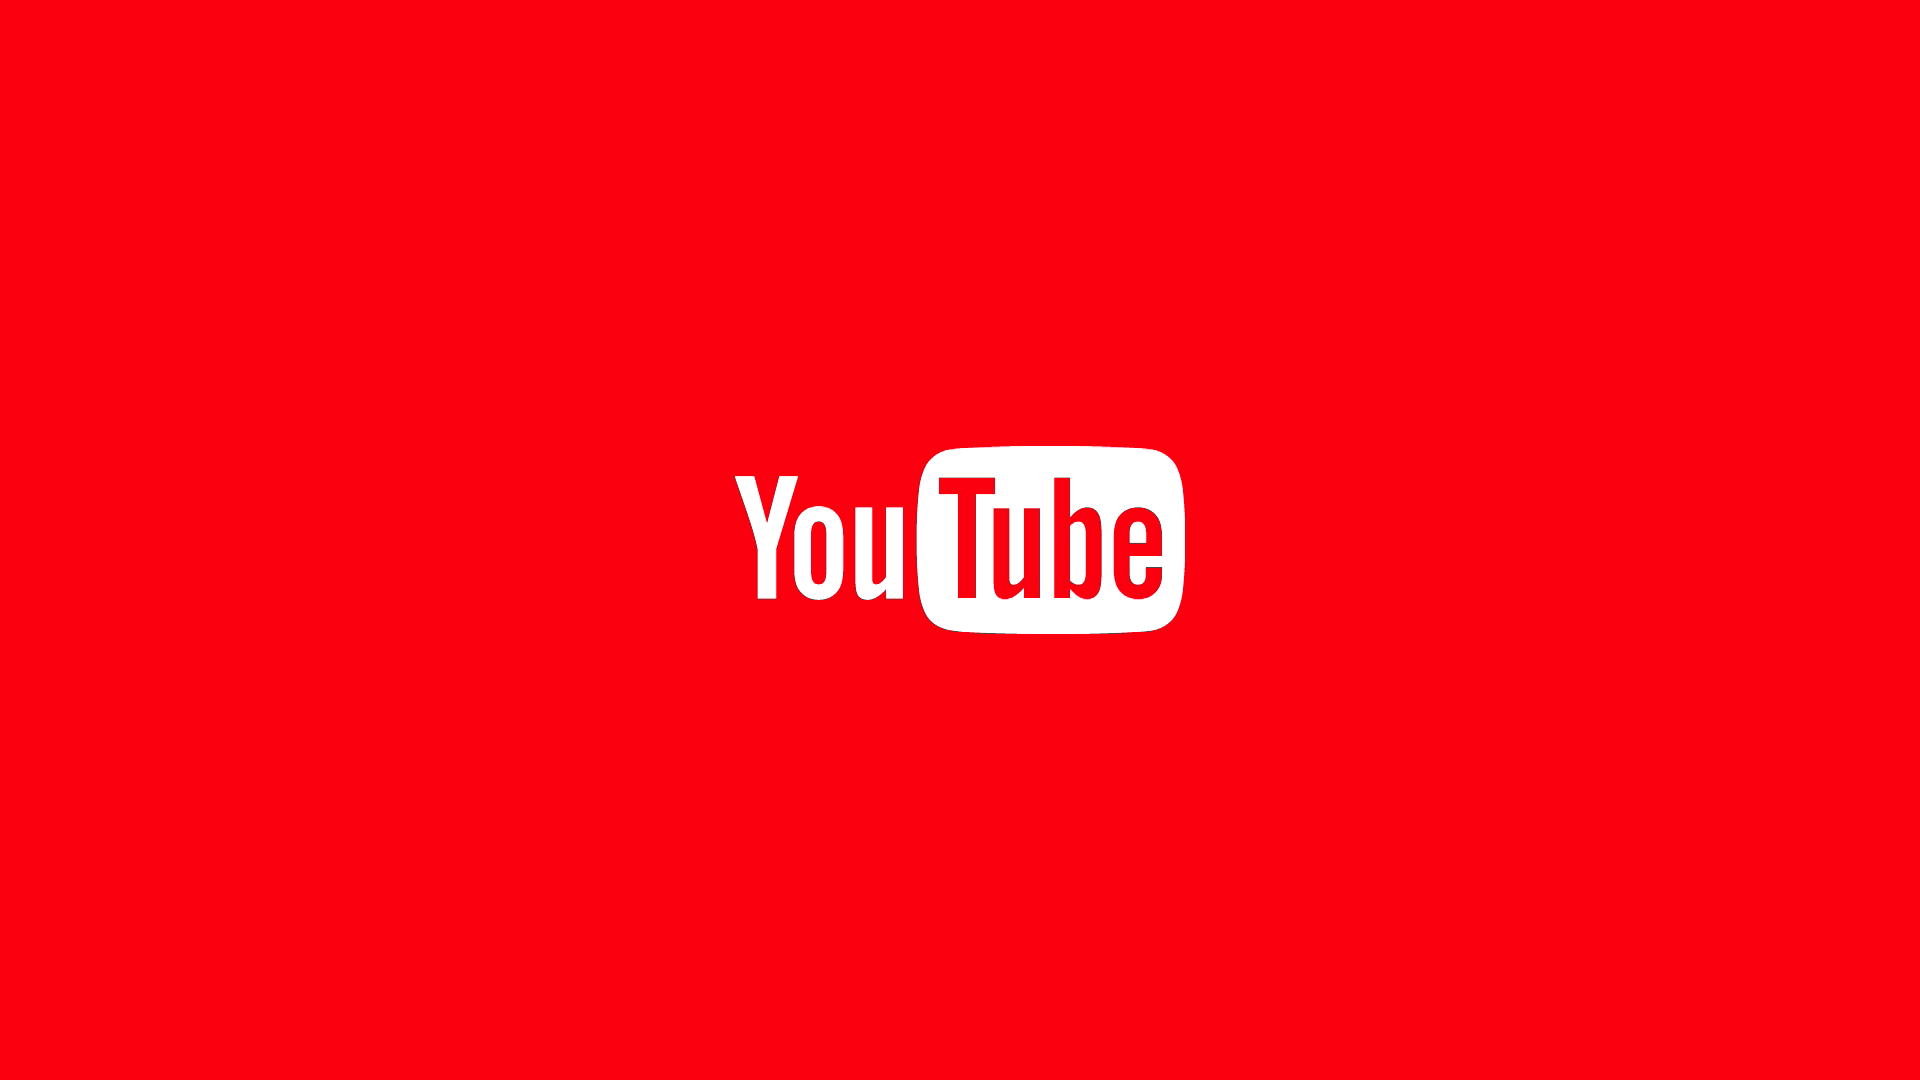 youtube logo hd wallpapers.